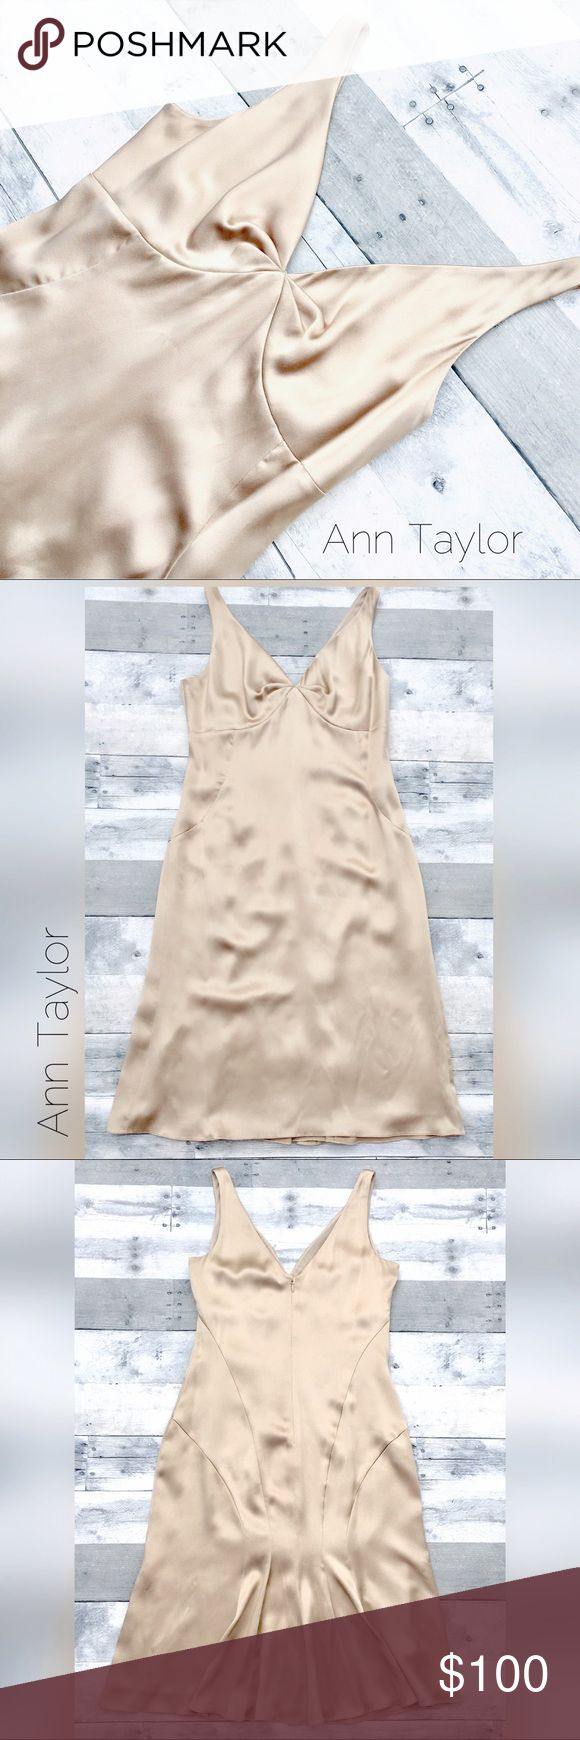 """NWT- Luxurious silk champagne cocktail dress Sexy, elegant and reminiscent of Hollywood glam...think Blake Lively.  100% silk dress features v in front and back.  Seaming is meant to absolutely be body con but in a fabulous classy way.  Flat lay measurements are approximately 20"""" from pit to pit; 41 1/2"""" length from shoulder to hem. Lined. Ann Taylor Dresses Midi"""